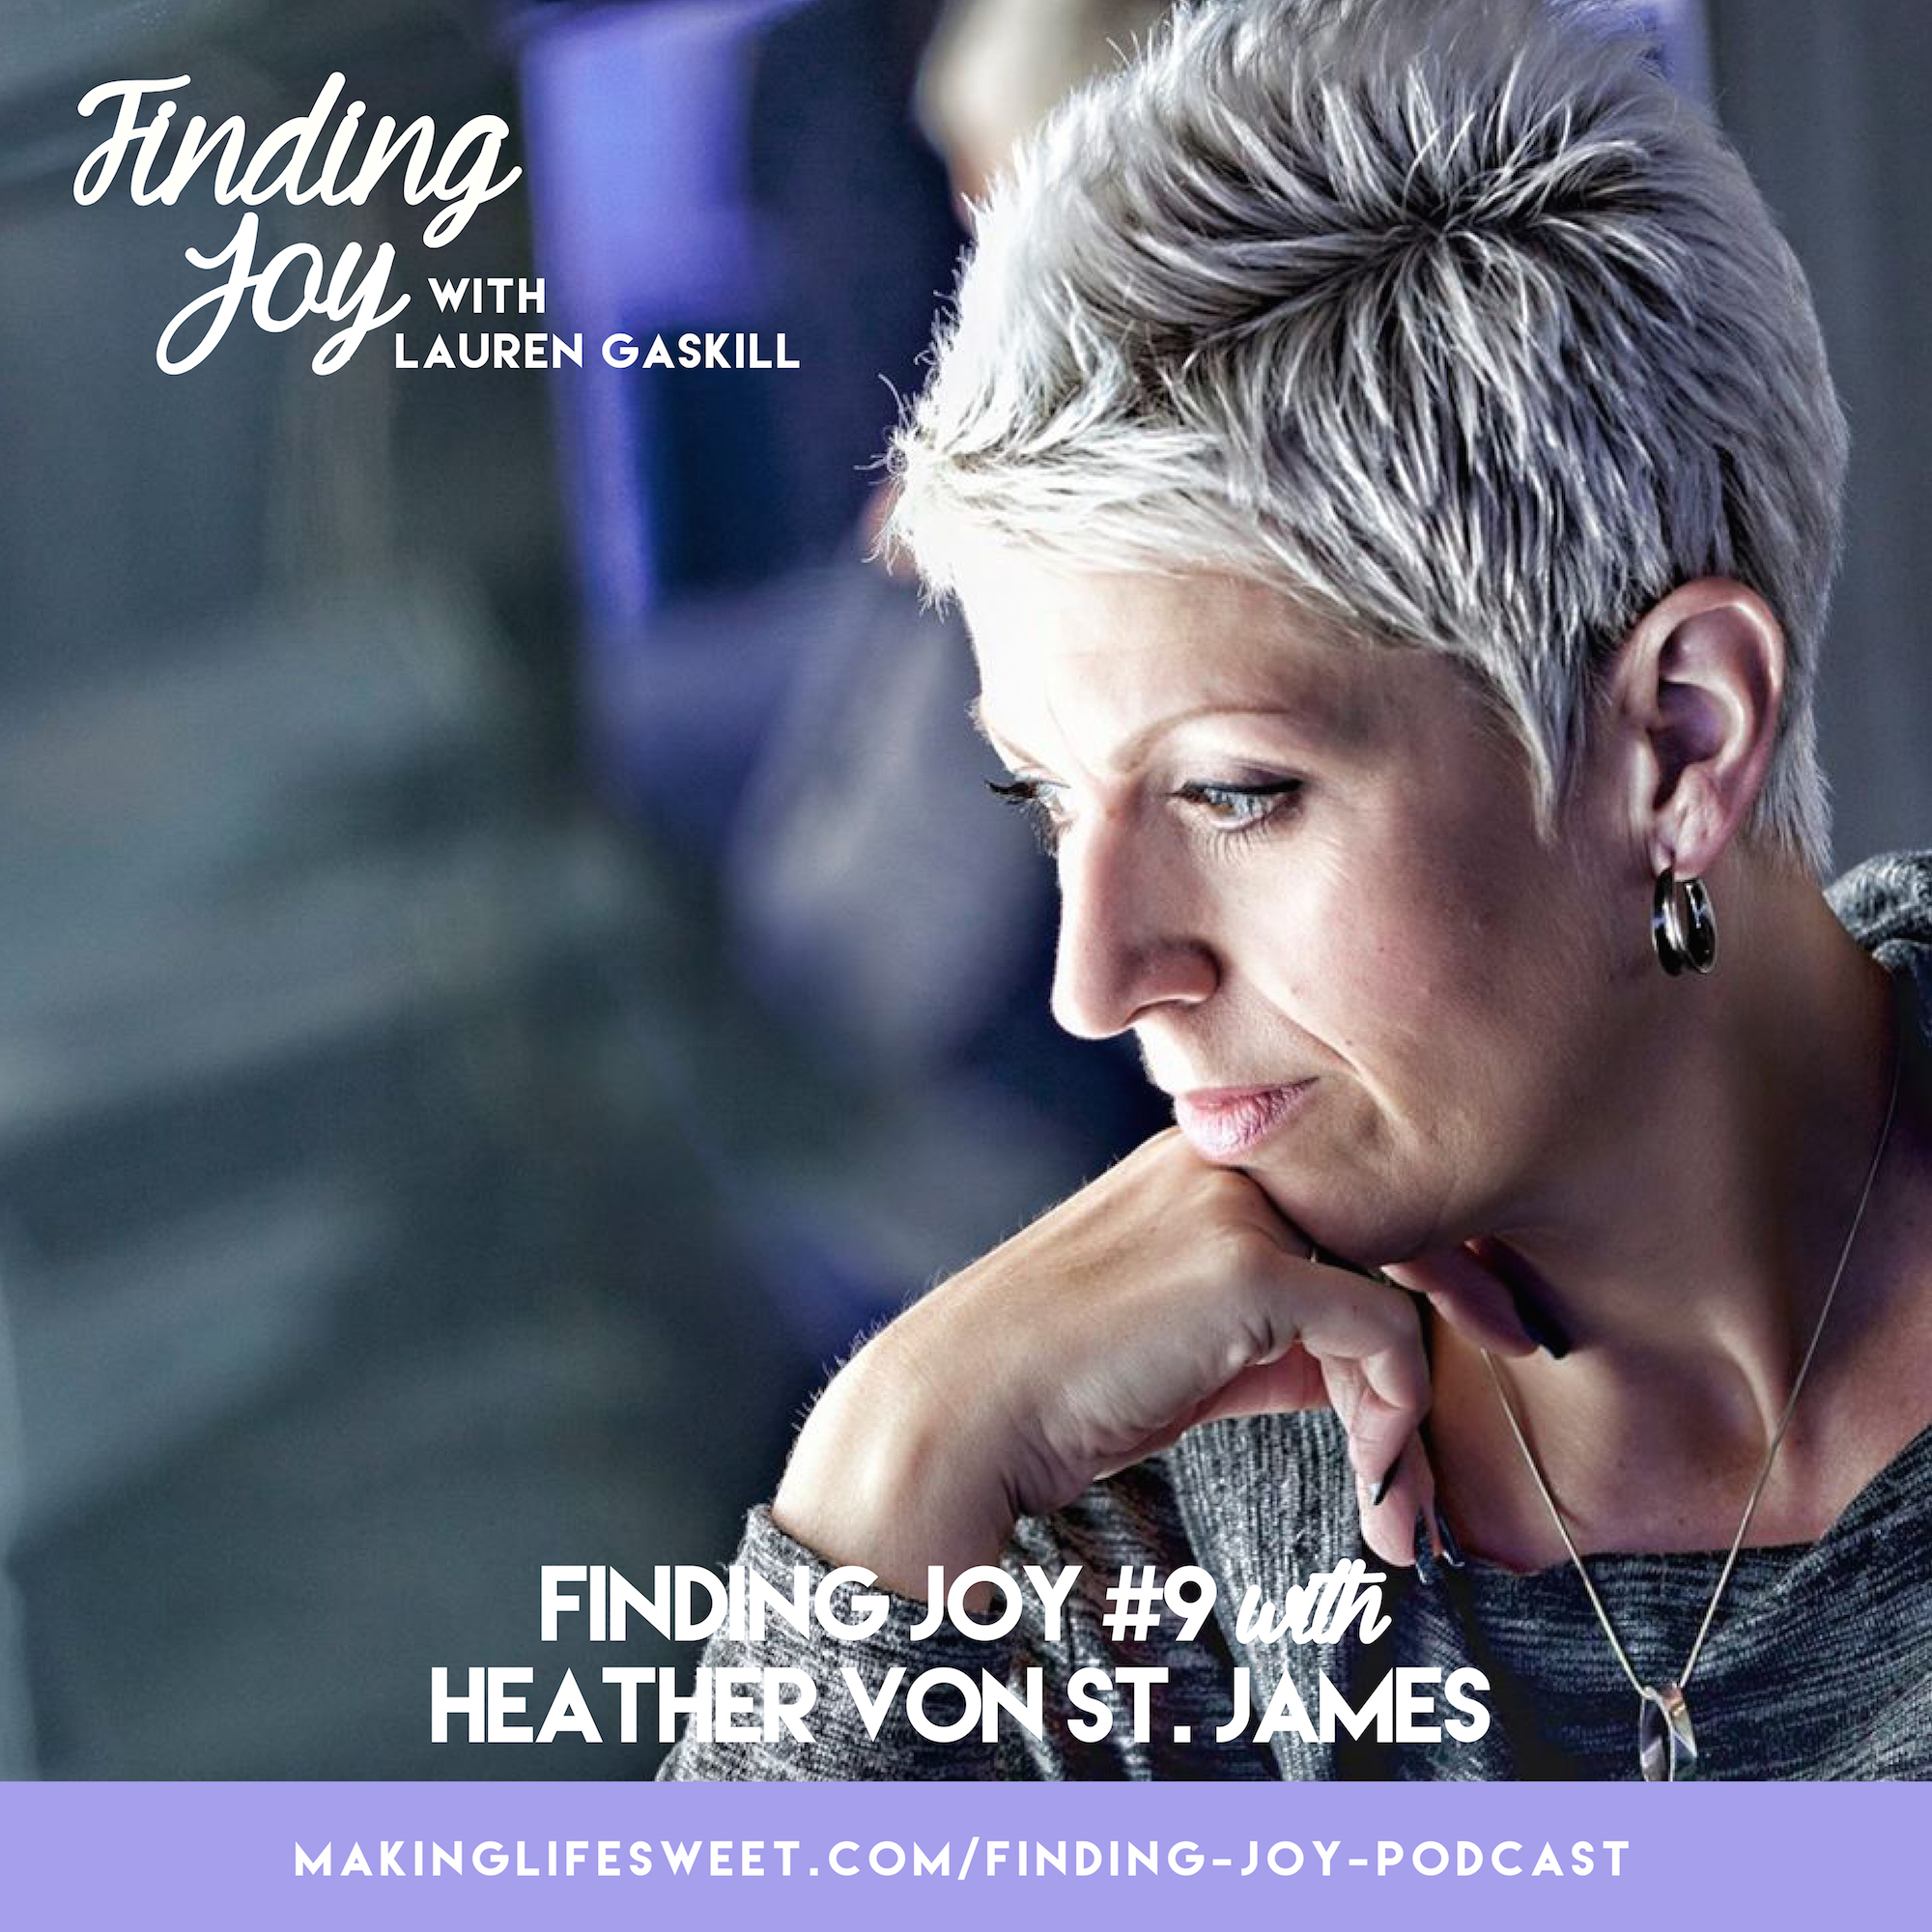 heather von st james finding joy podcast